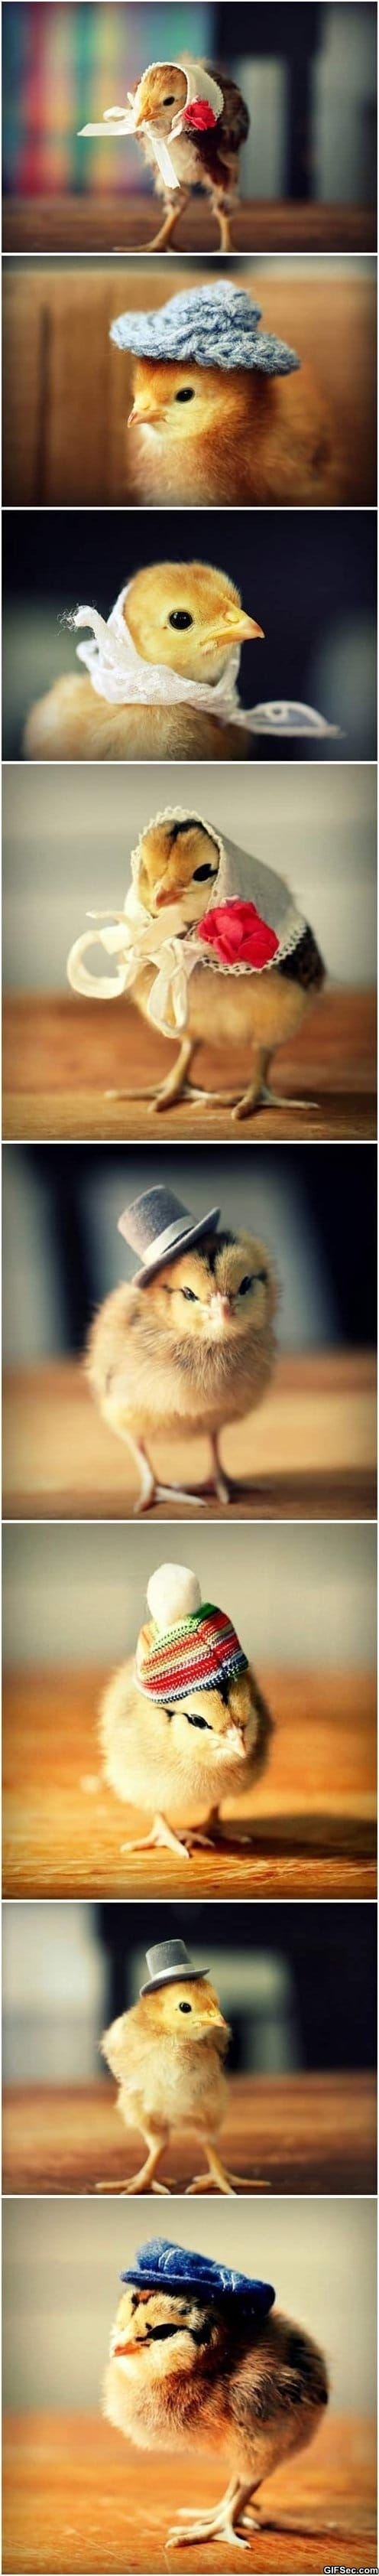 Funny Pictures - Chicks in hats